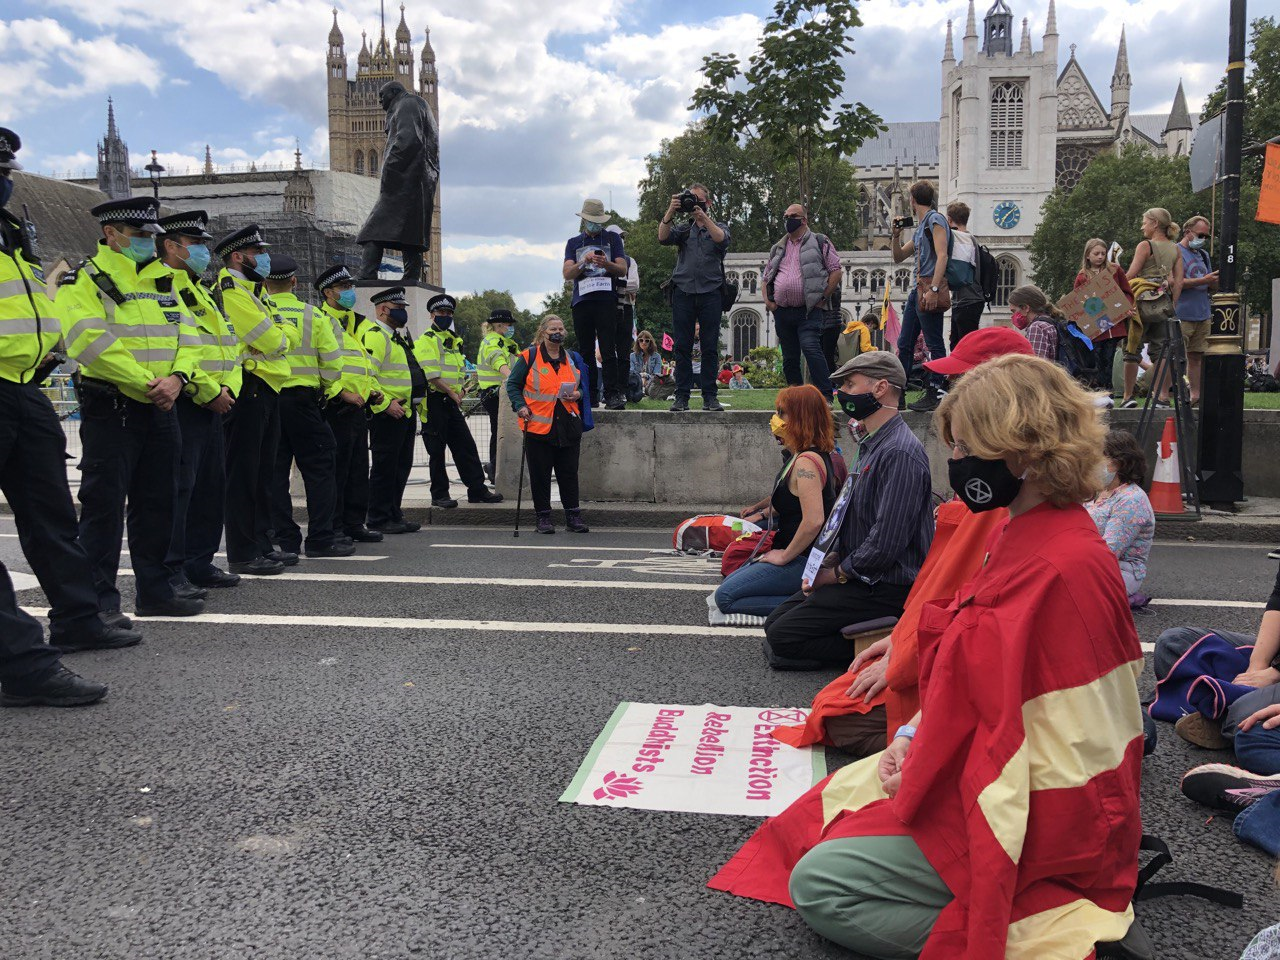 Members of XR Buddhists sitting in the road in Parliament Square in front of lines of police.